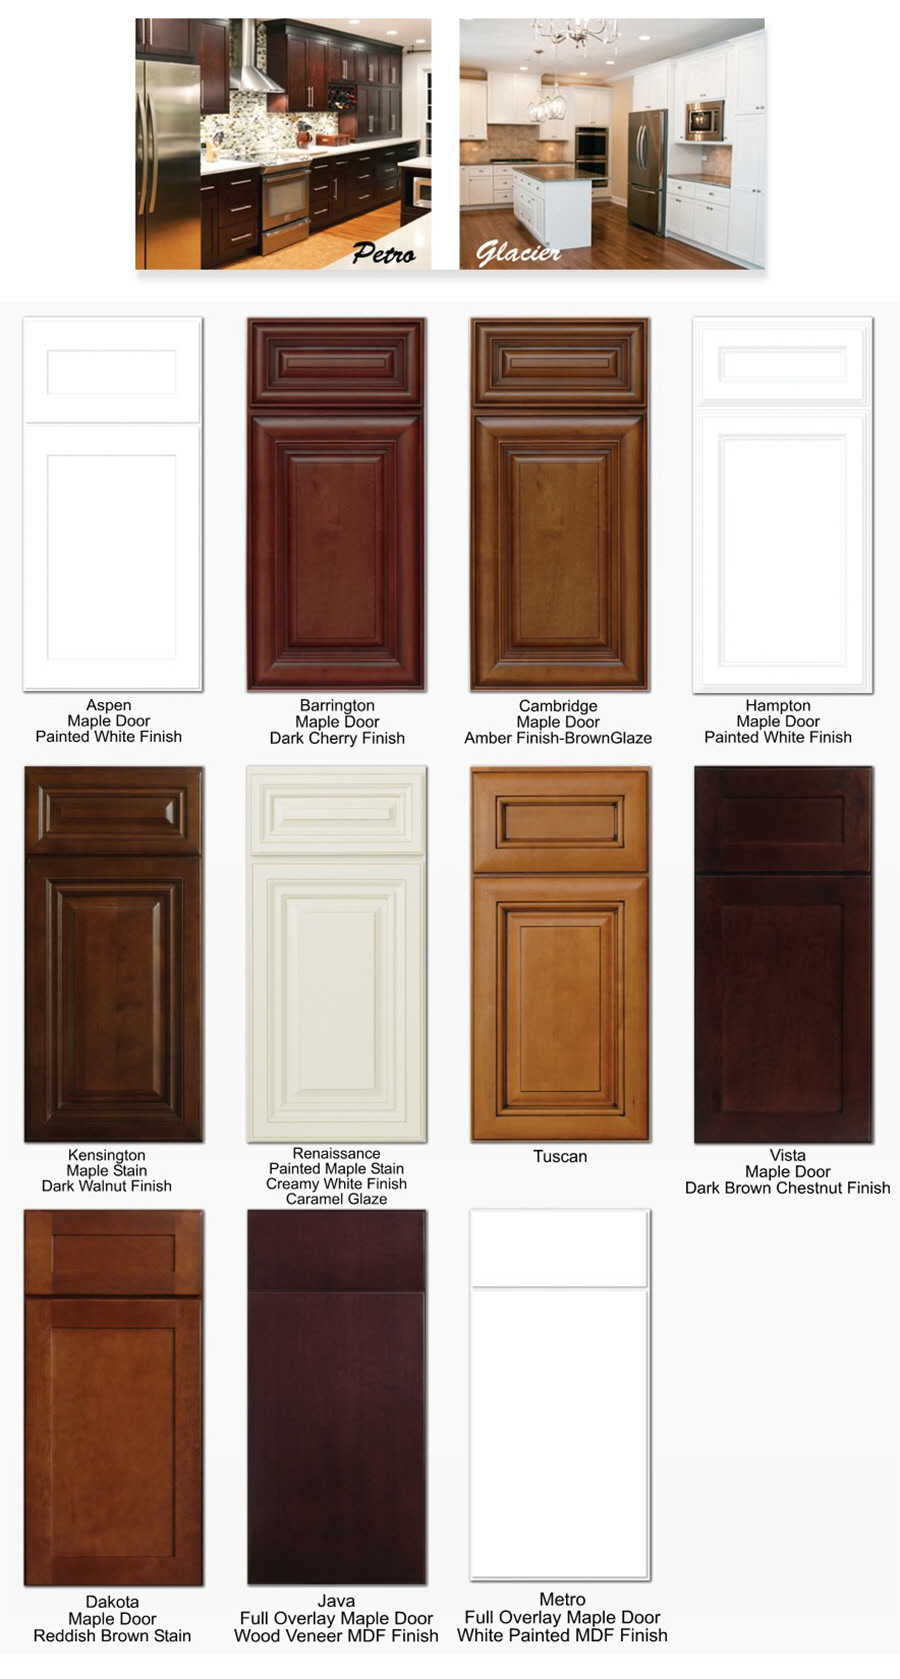 Choice cabinet kitchen cabinets kbc direct kitchen for Kitchen cabinet choices